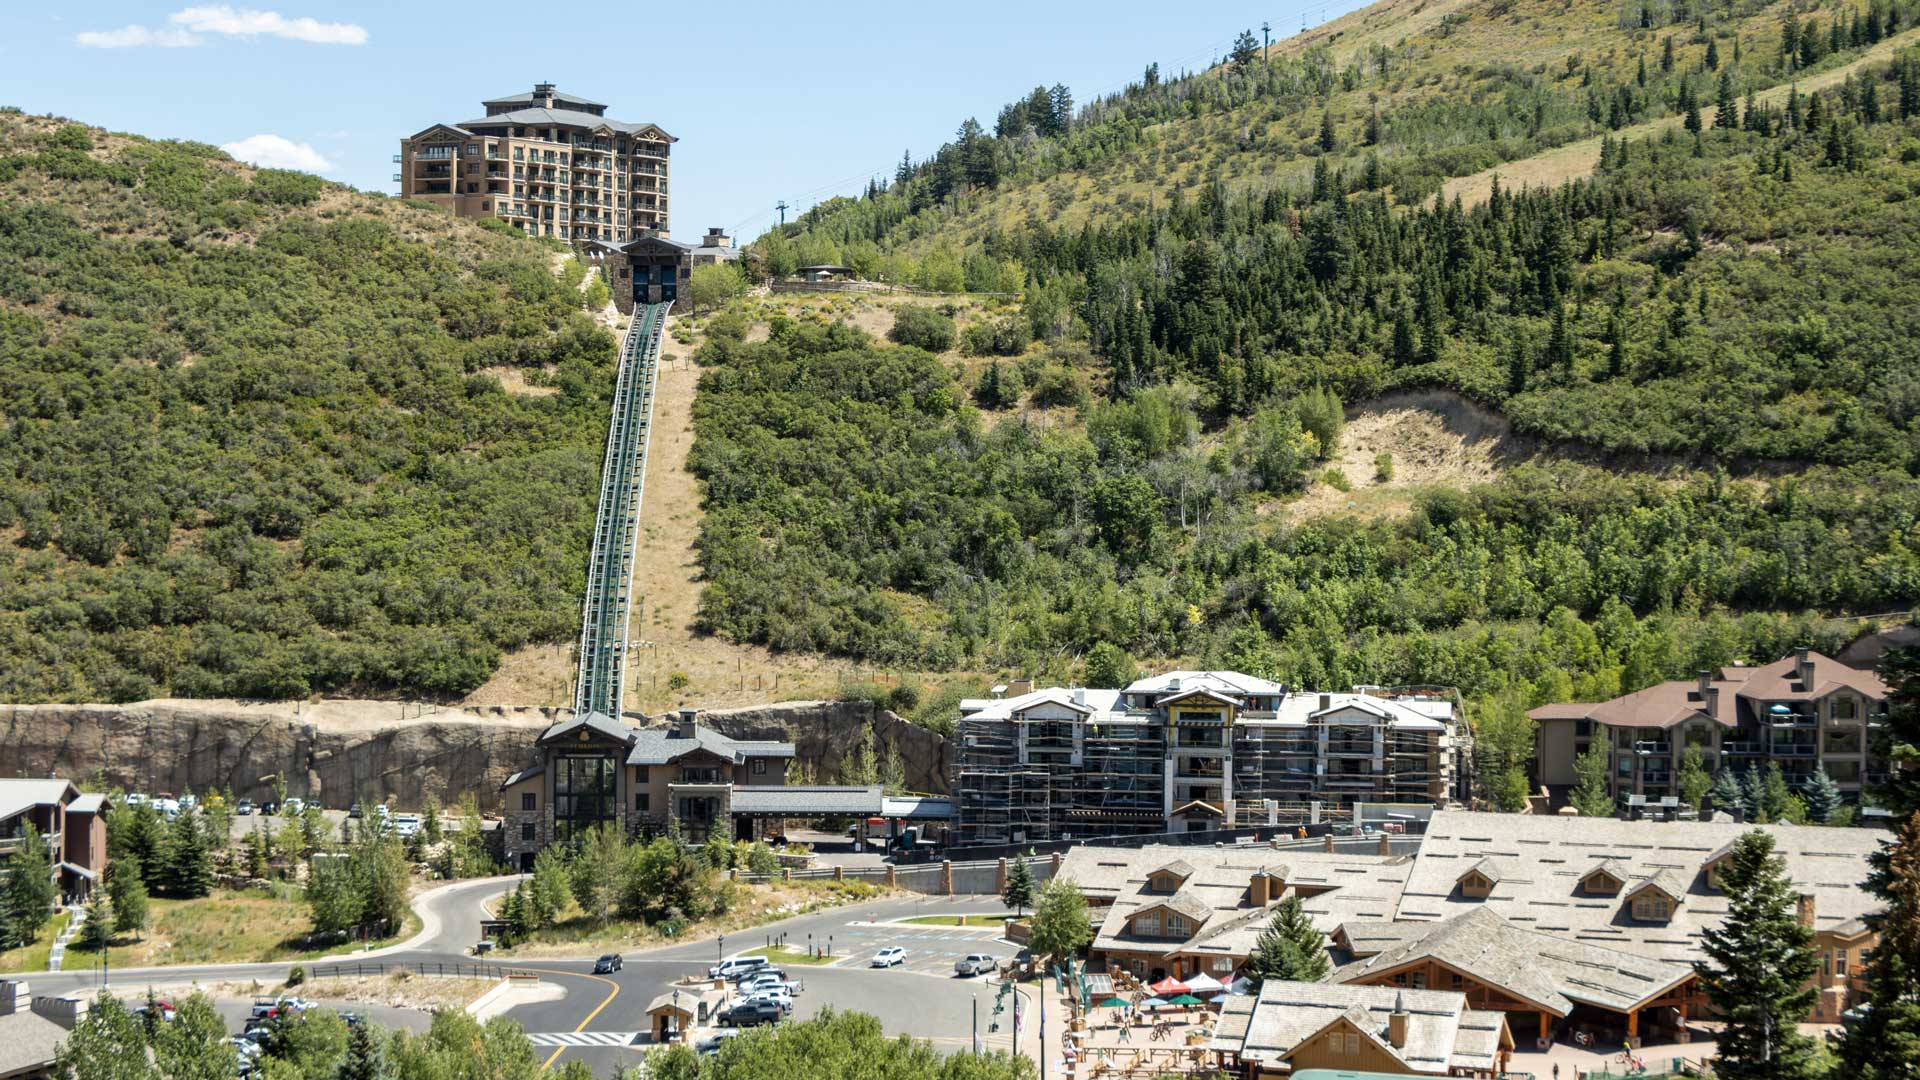 Construction Progress, The Residences at The St. Regis | Snow Park, August 13, 2020